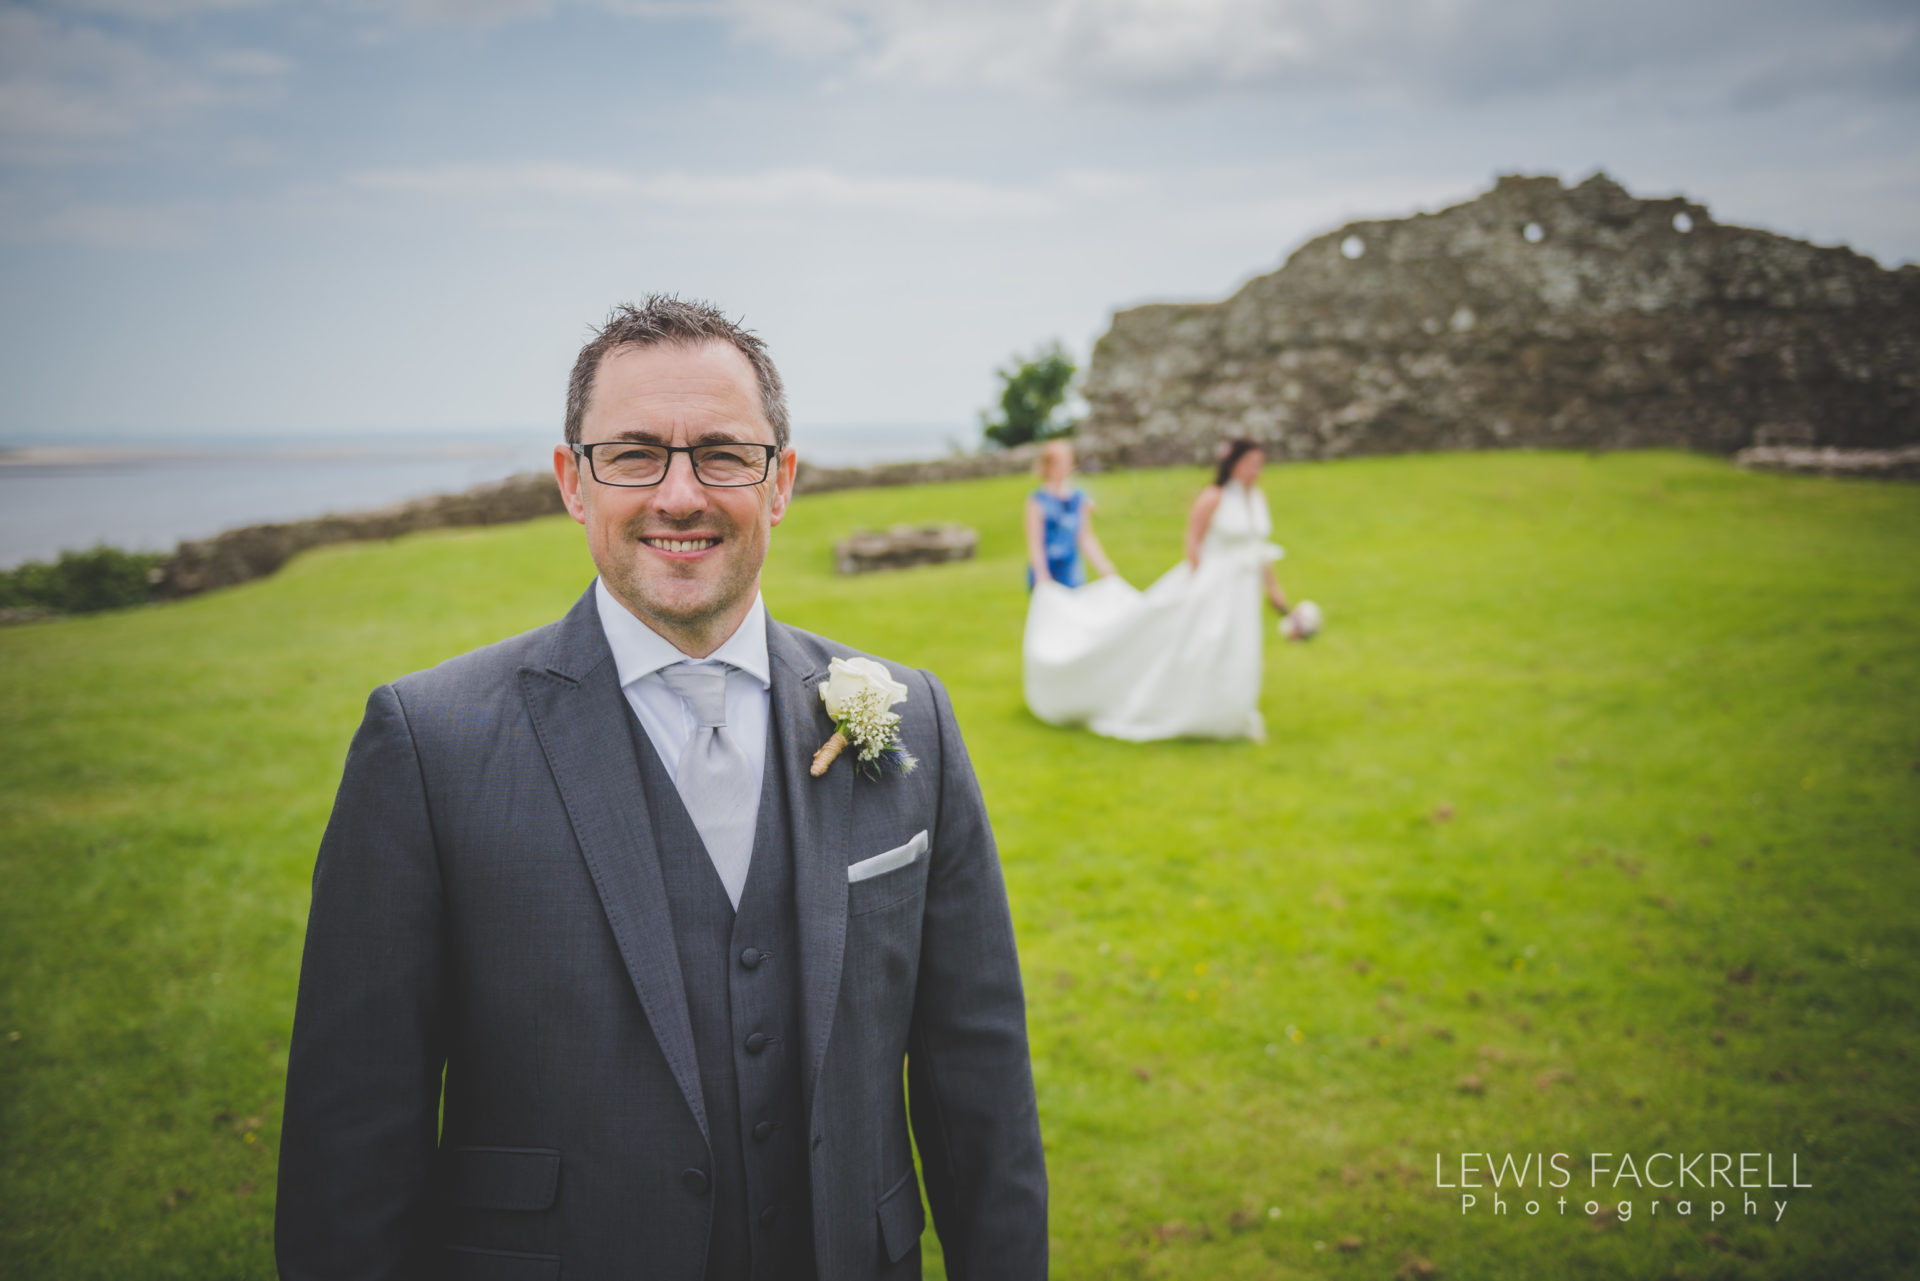 Lewis-Fackrell-Photography-Wedding-Photographer-Cardiff-Swansea-Bristol-Newport-Pre-wedding-photoshoot-Rhian-Mark-Mansion-House-Llansteffan-Carmarthenshire--65